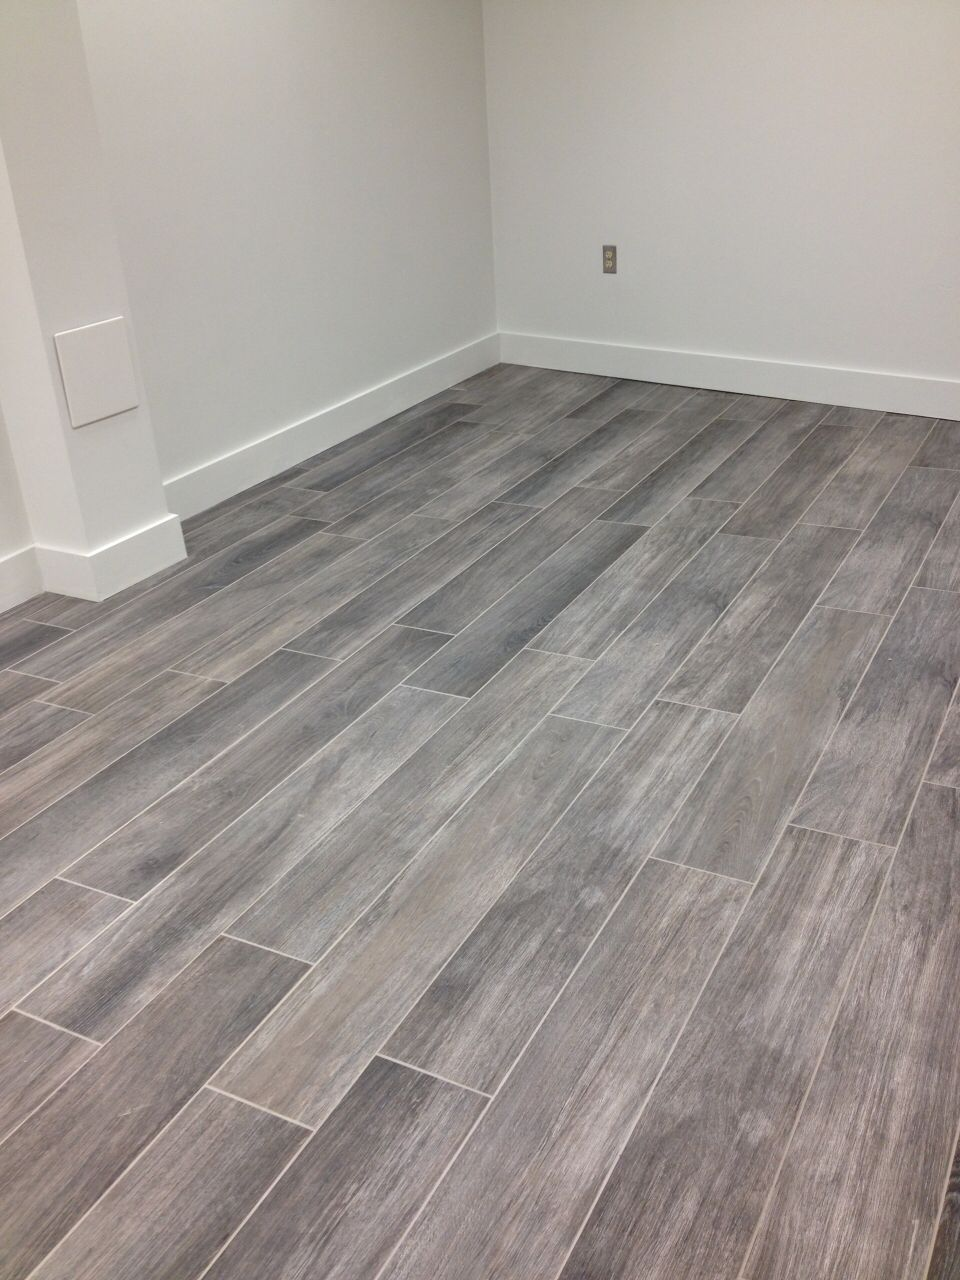 Porcelain grey wood tile mb grey wood tile wood tile - Laminate tiles for bathroom walls ...